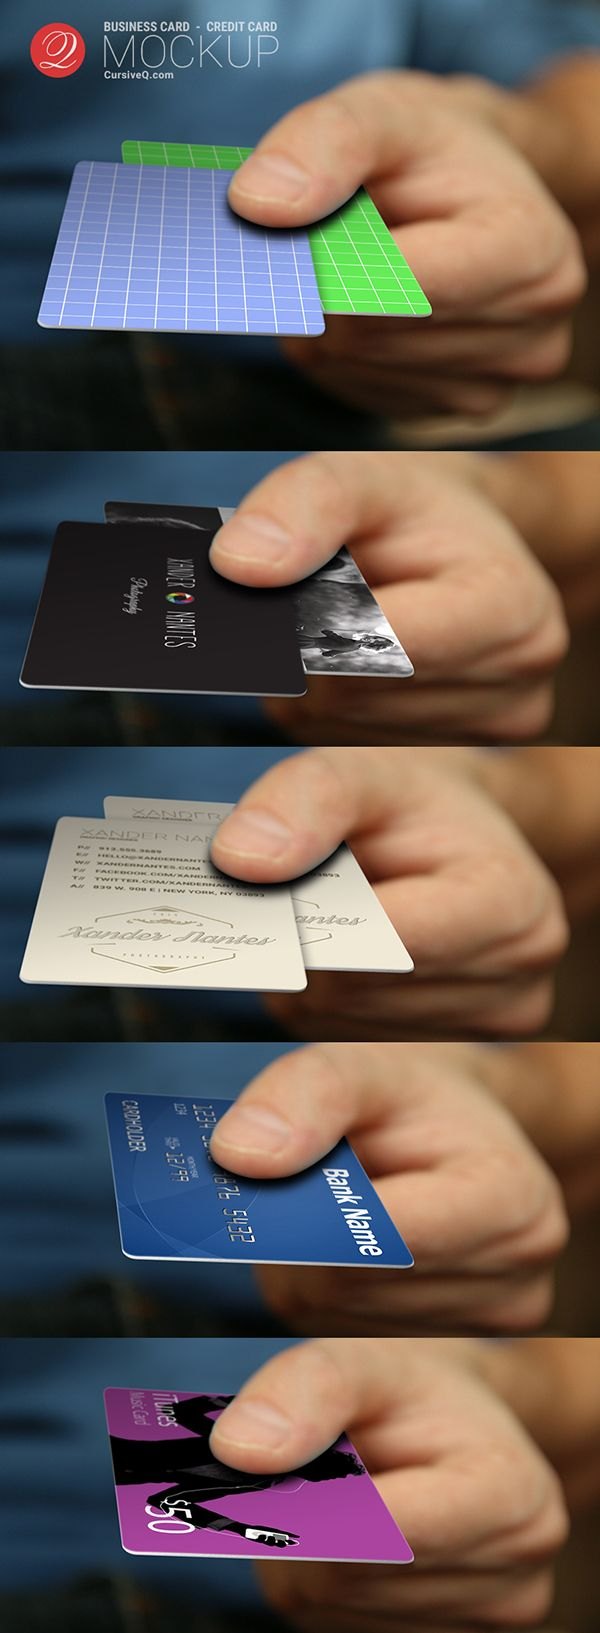 Free Business Card / Credit Card Hand Mockup on Behance